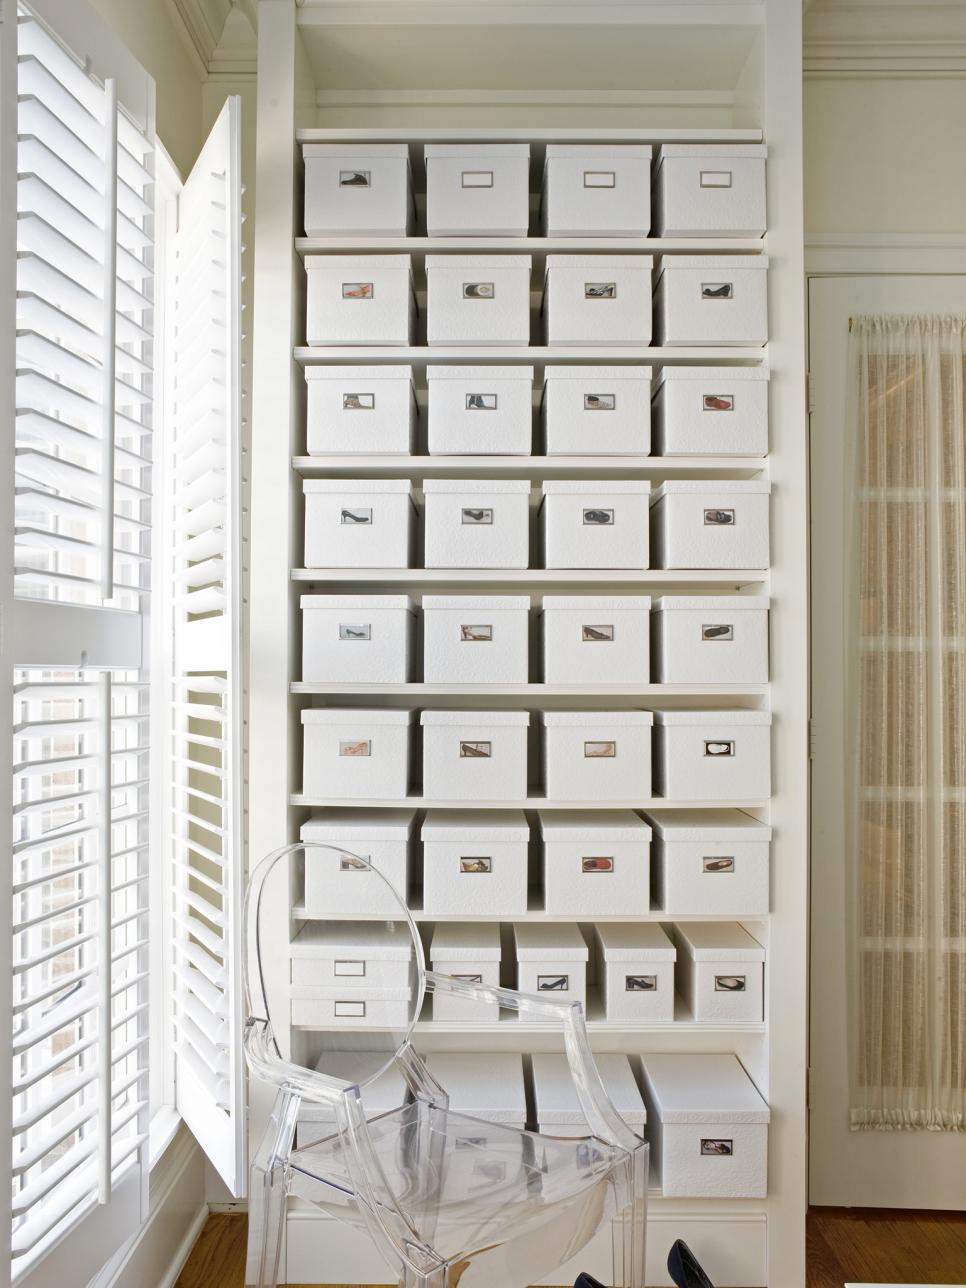 DIY shoe storage // Organized closets // closet organizing // how to organize your shoes // shoe storage ideas // sleek home design ideas // shoe storage // high end shoe boxes // www.SimplySpaced.com